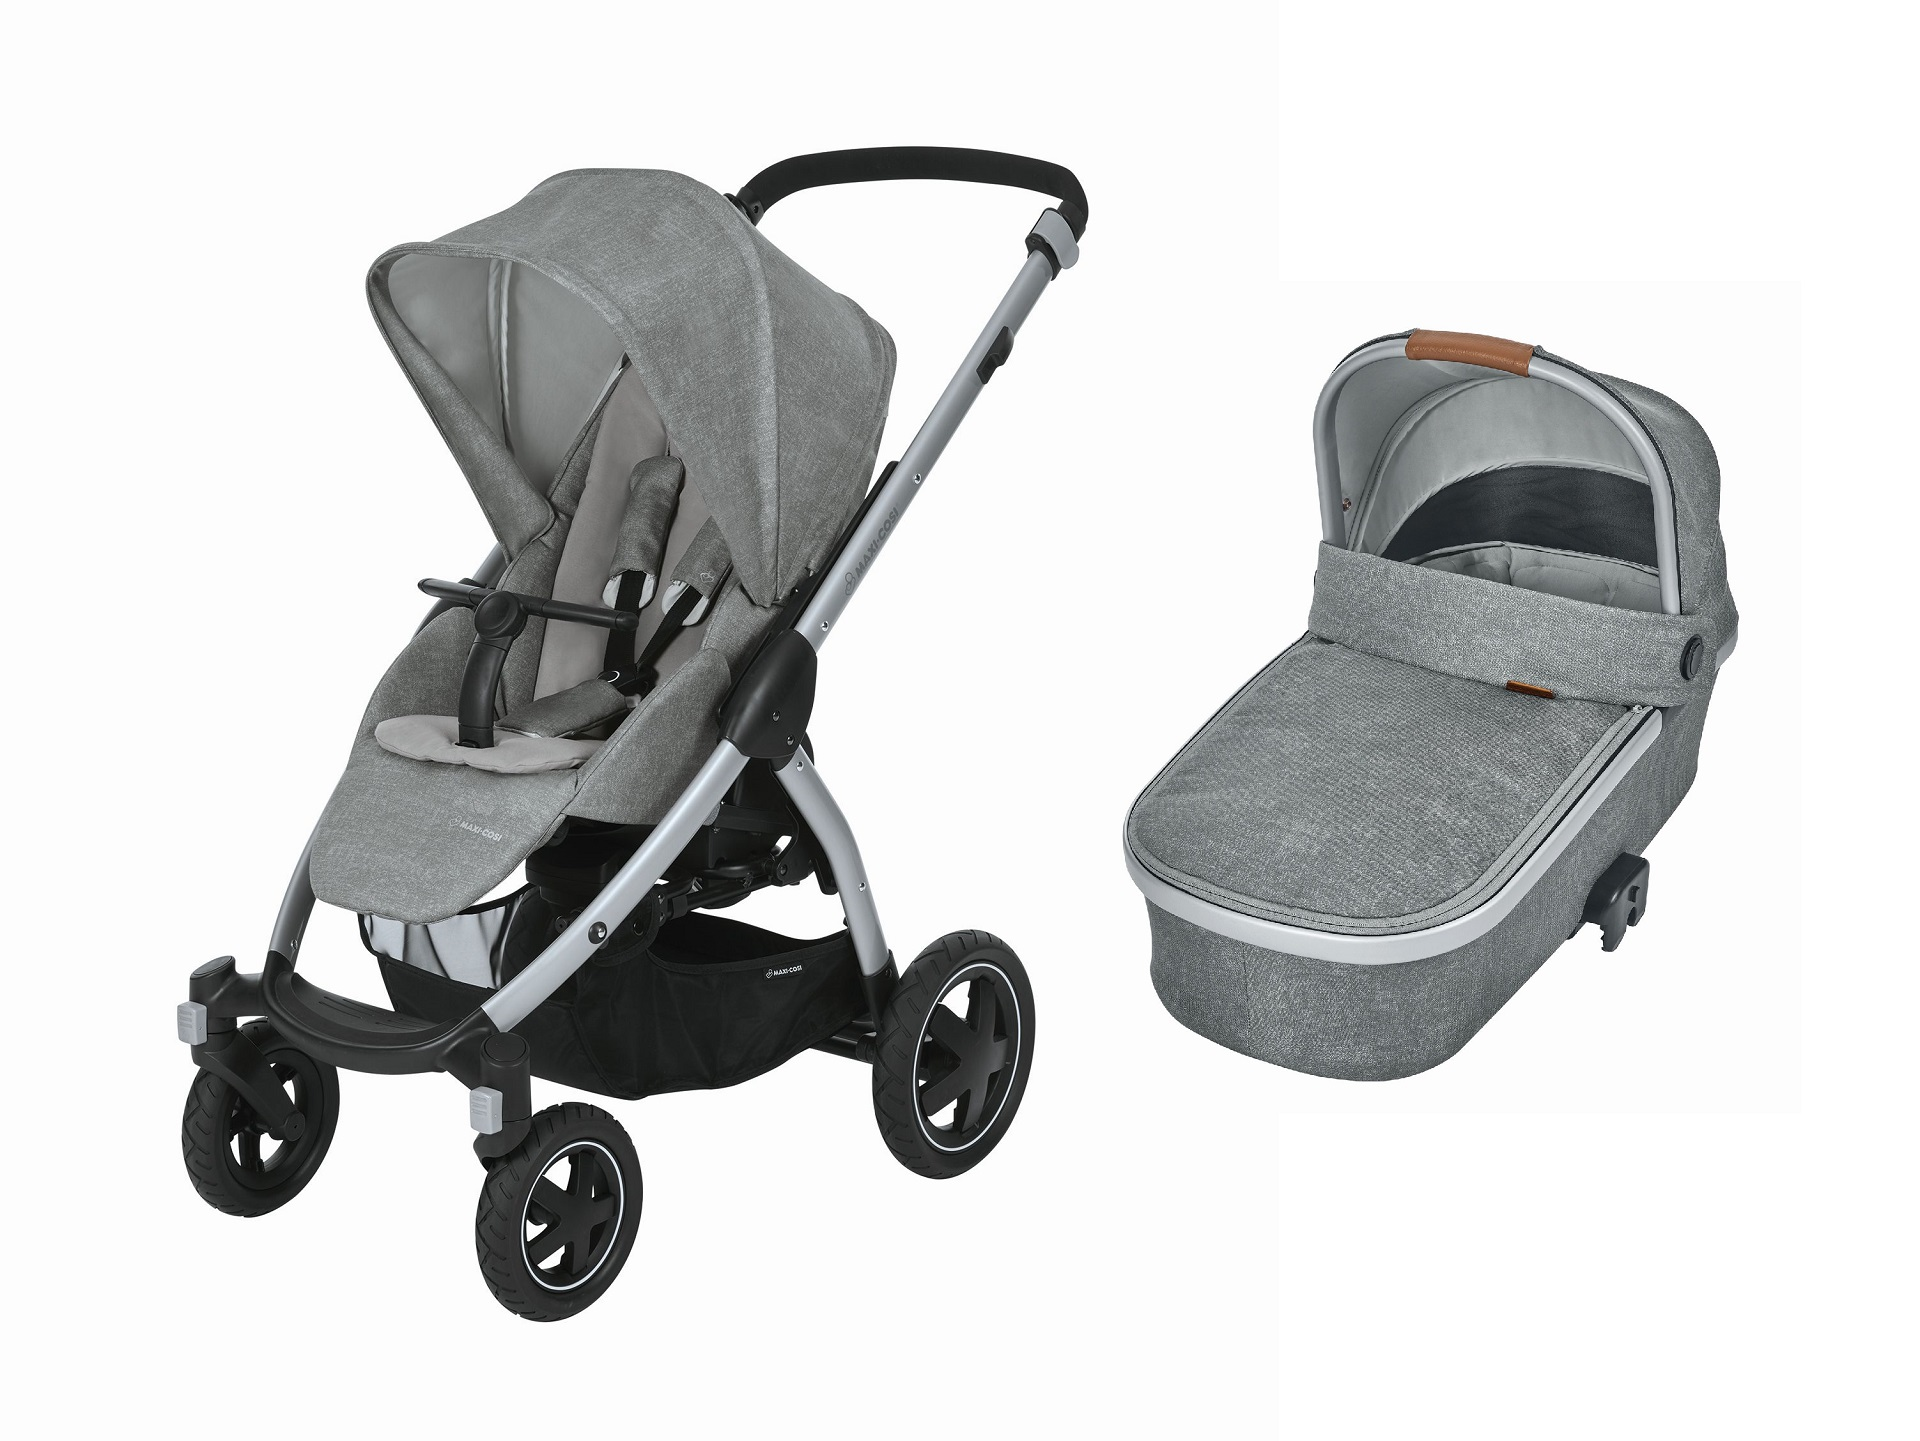 maxi cosi stroller stella including carrycot oria 2018 nomad grey buy at kidsroom strollers. Black Bedroom Furniture Sets. Home Design Ideas